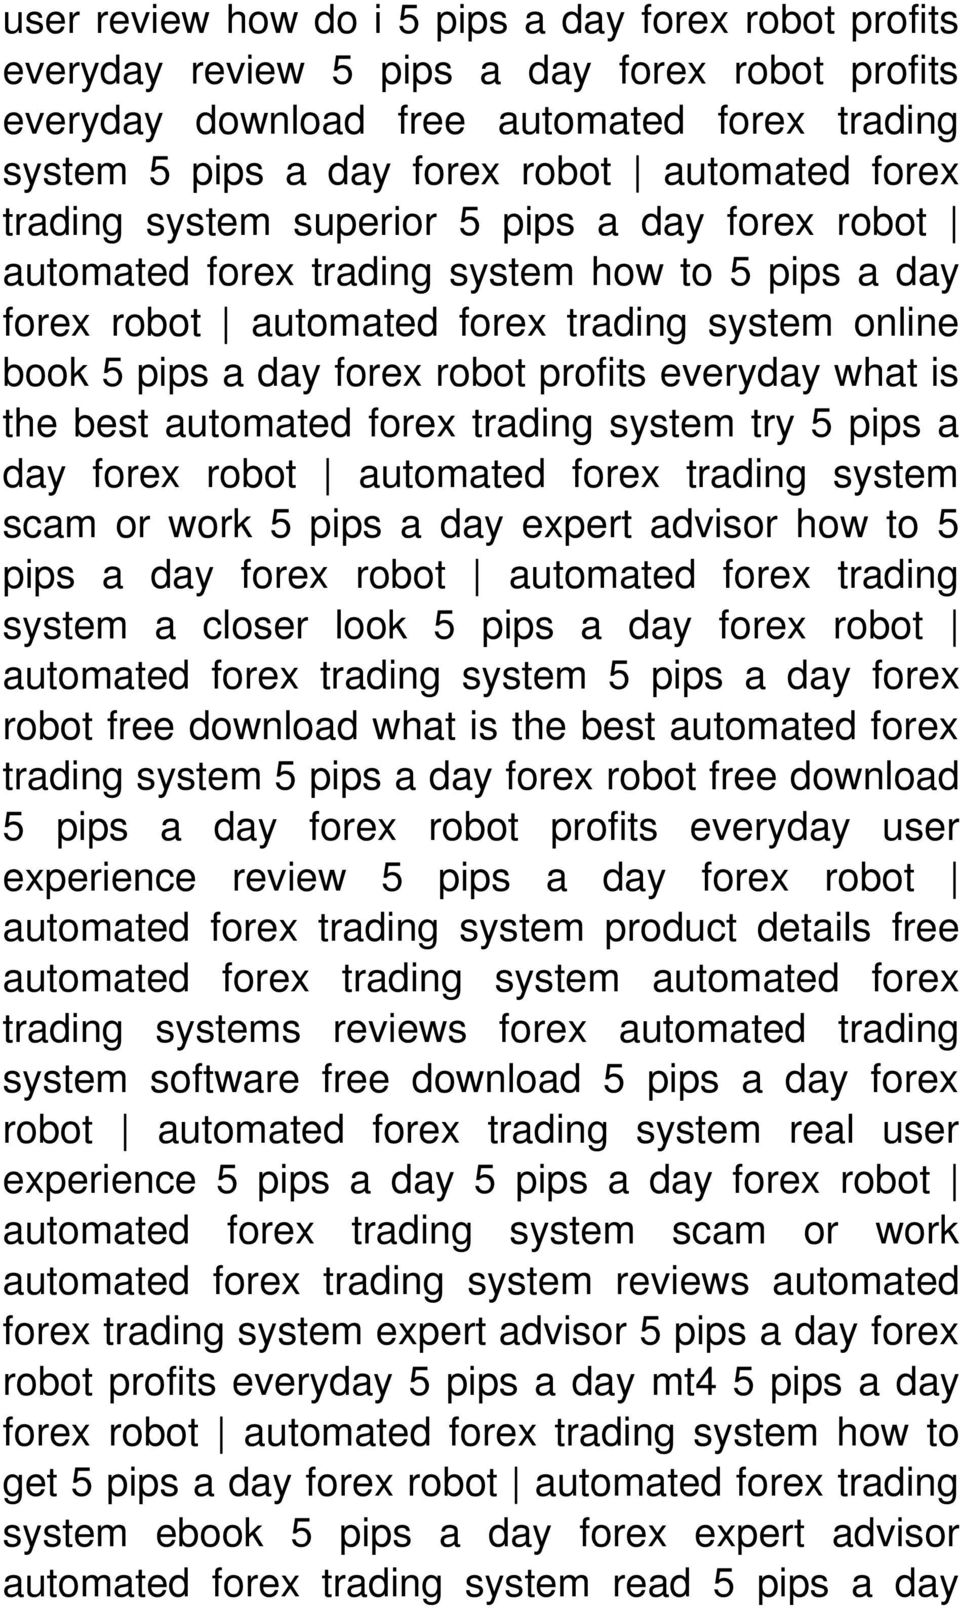 what is the best automated forex trading system try 5 pips a day forex robot automated forex trading system scam or work 5 pips a day expert advisor how to 5 pips a day forex robot automated forex